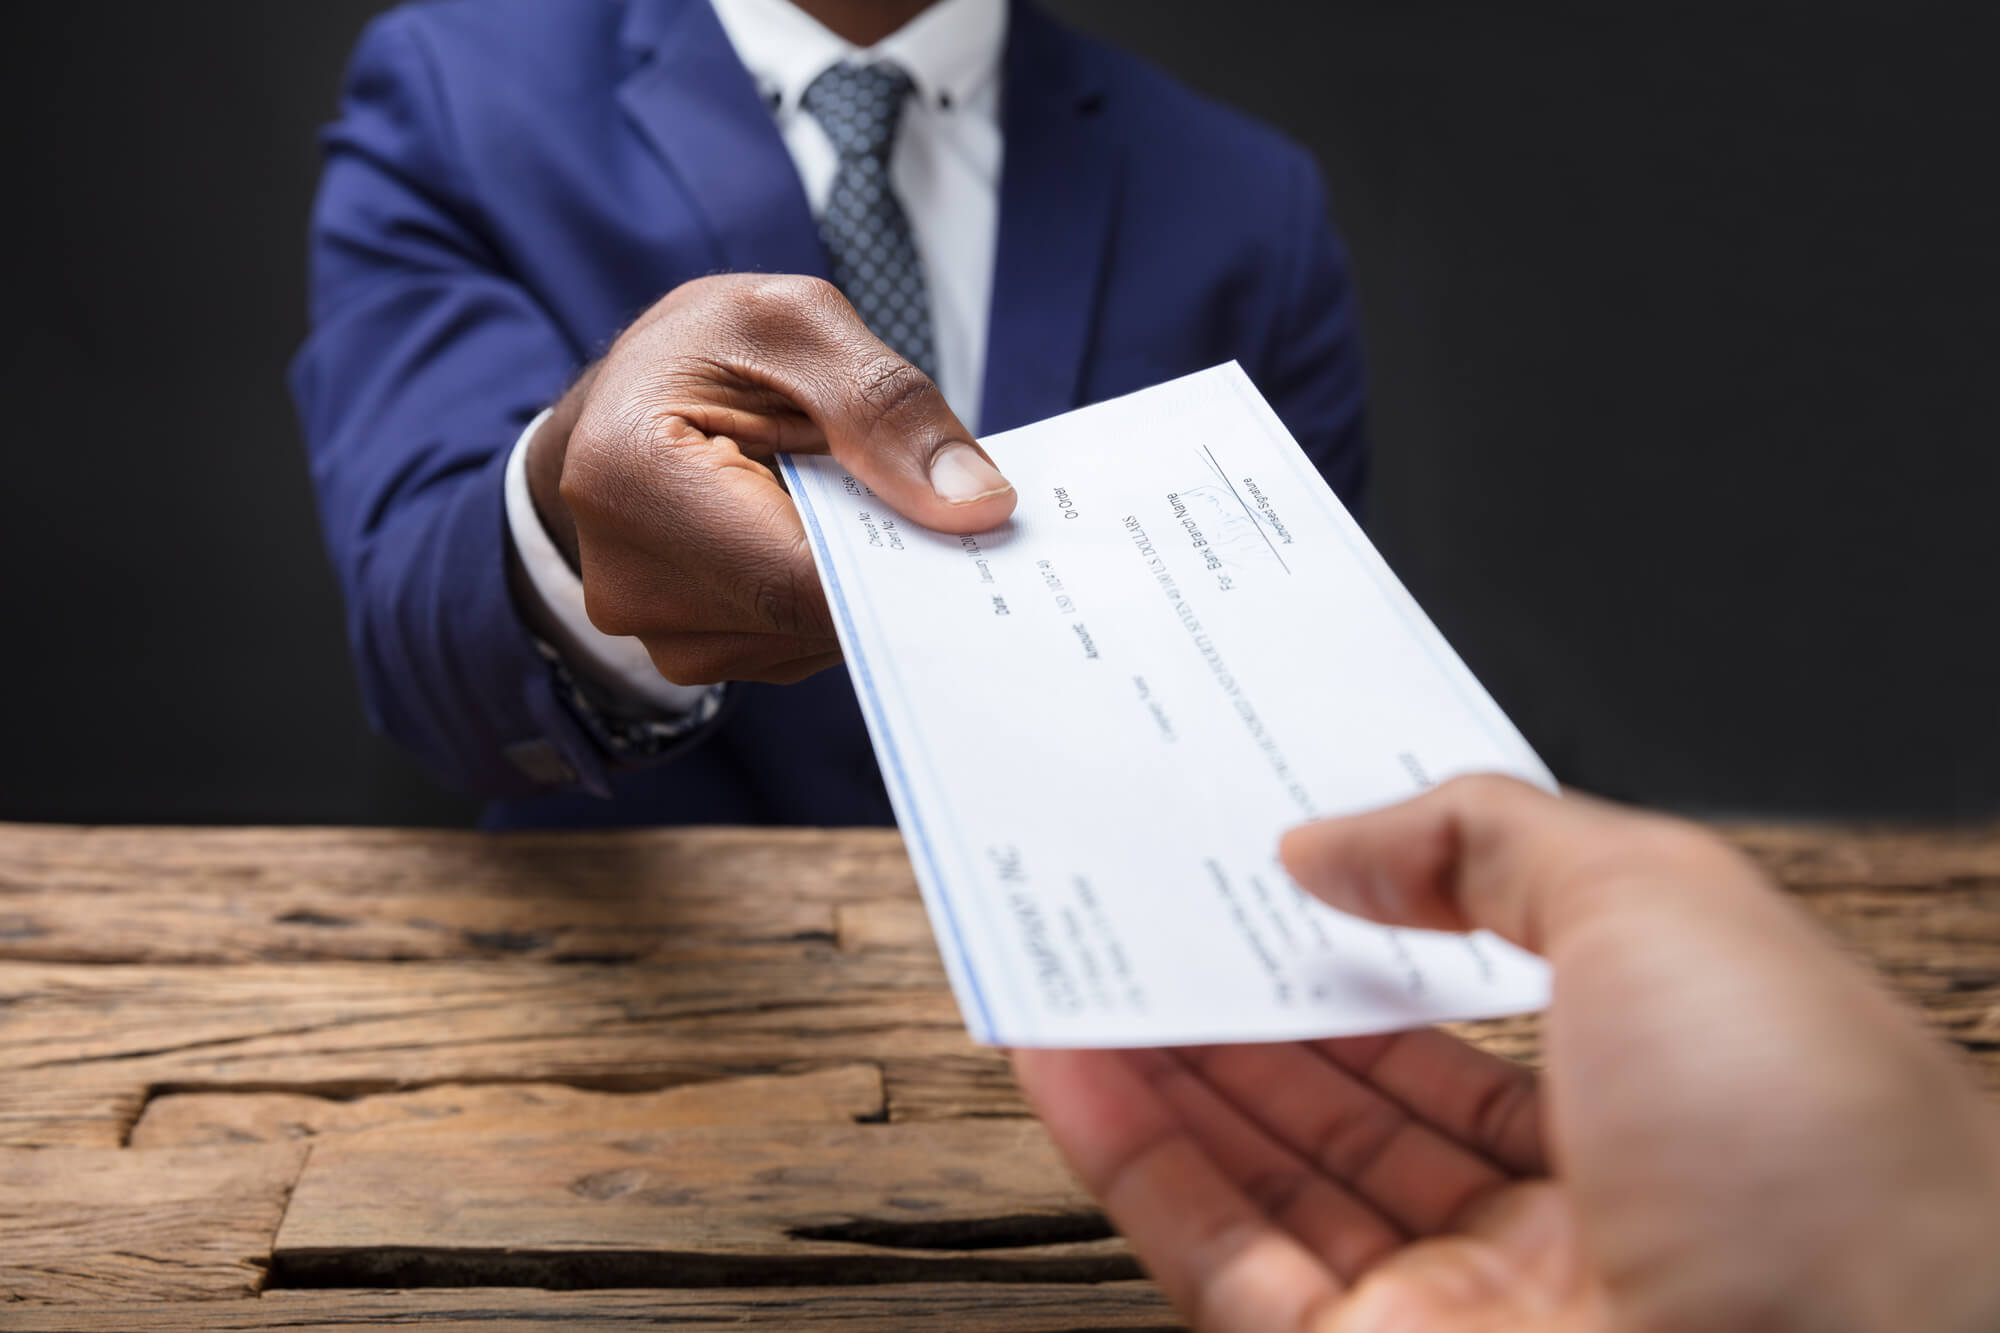 Personal Financing Strategist in West Palm Beach handing a check to someone